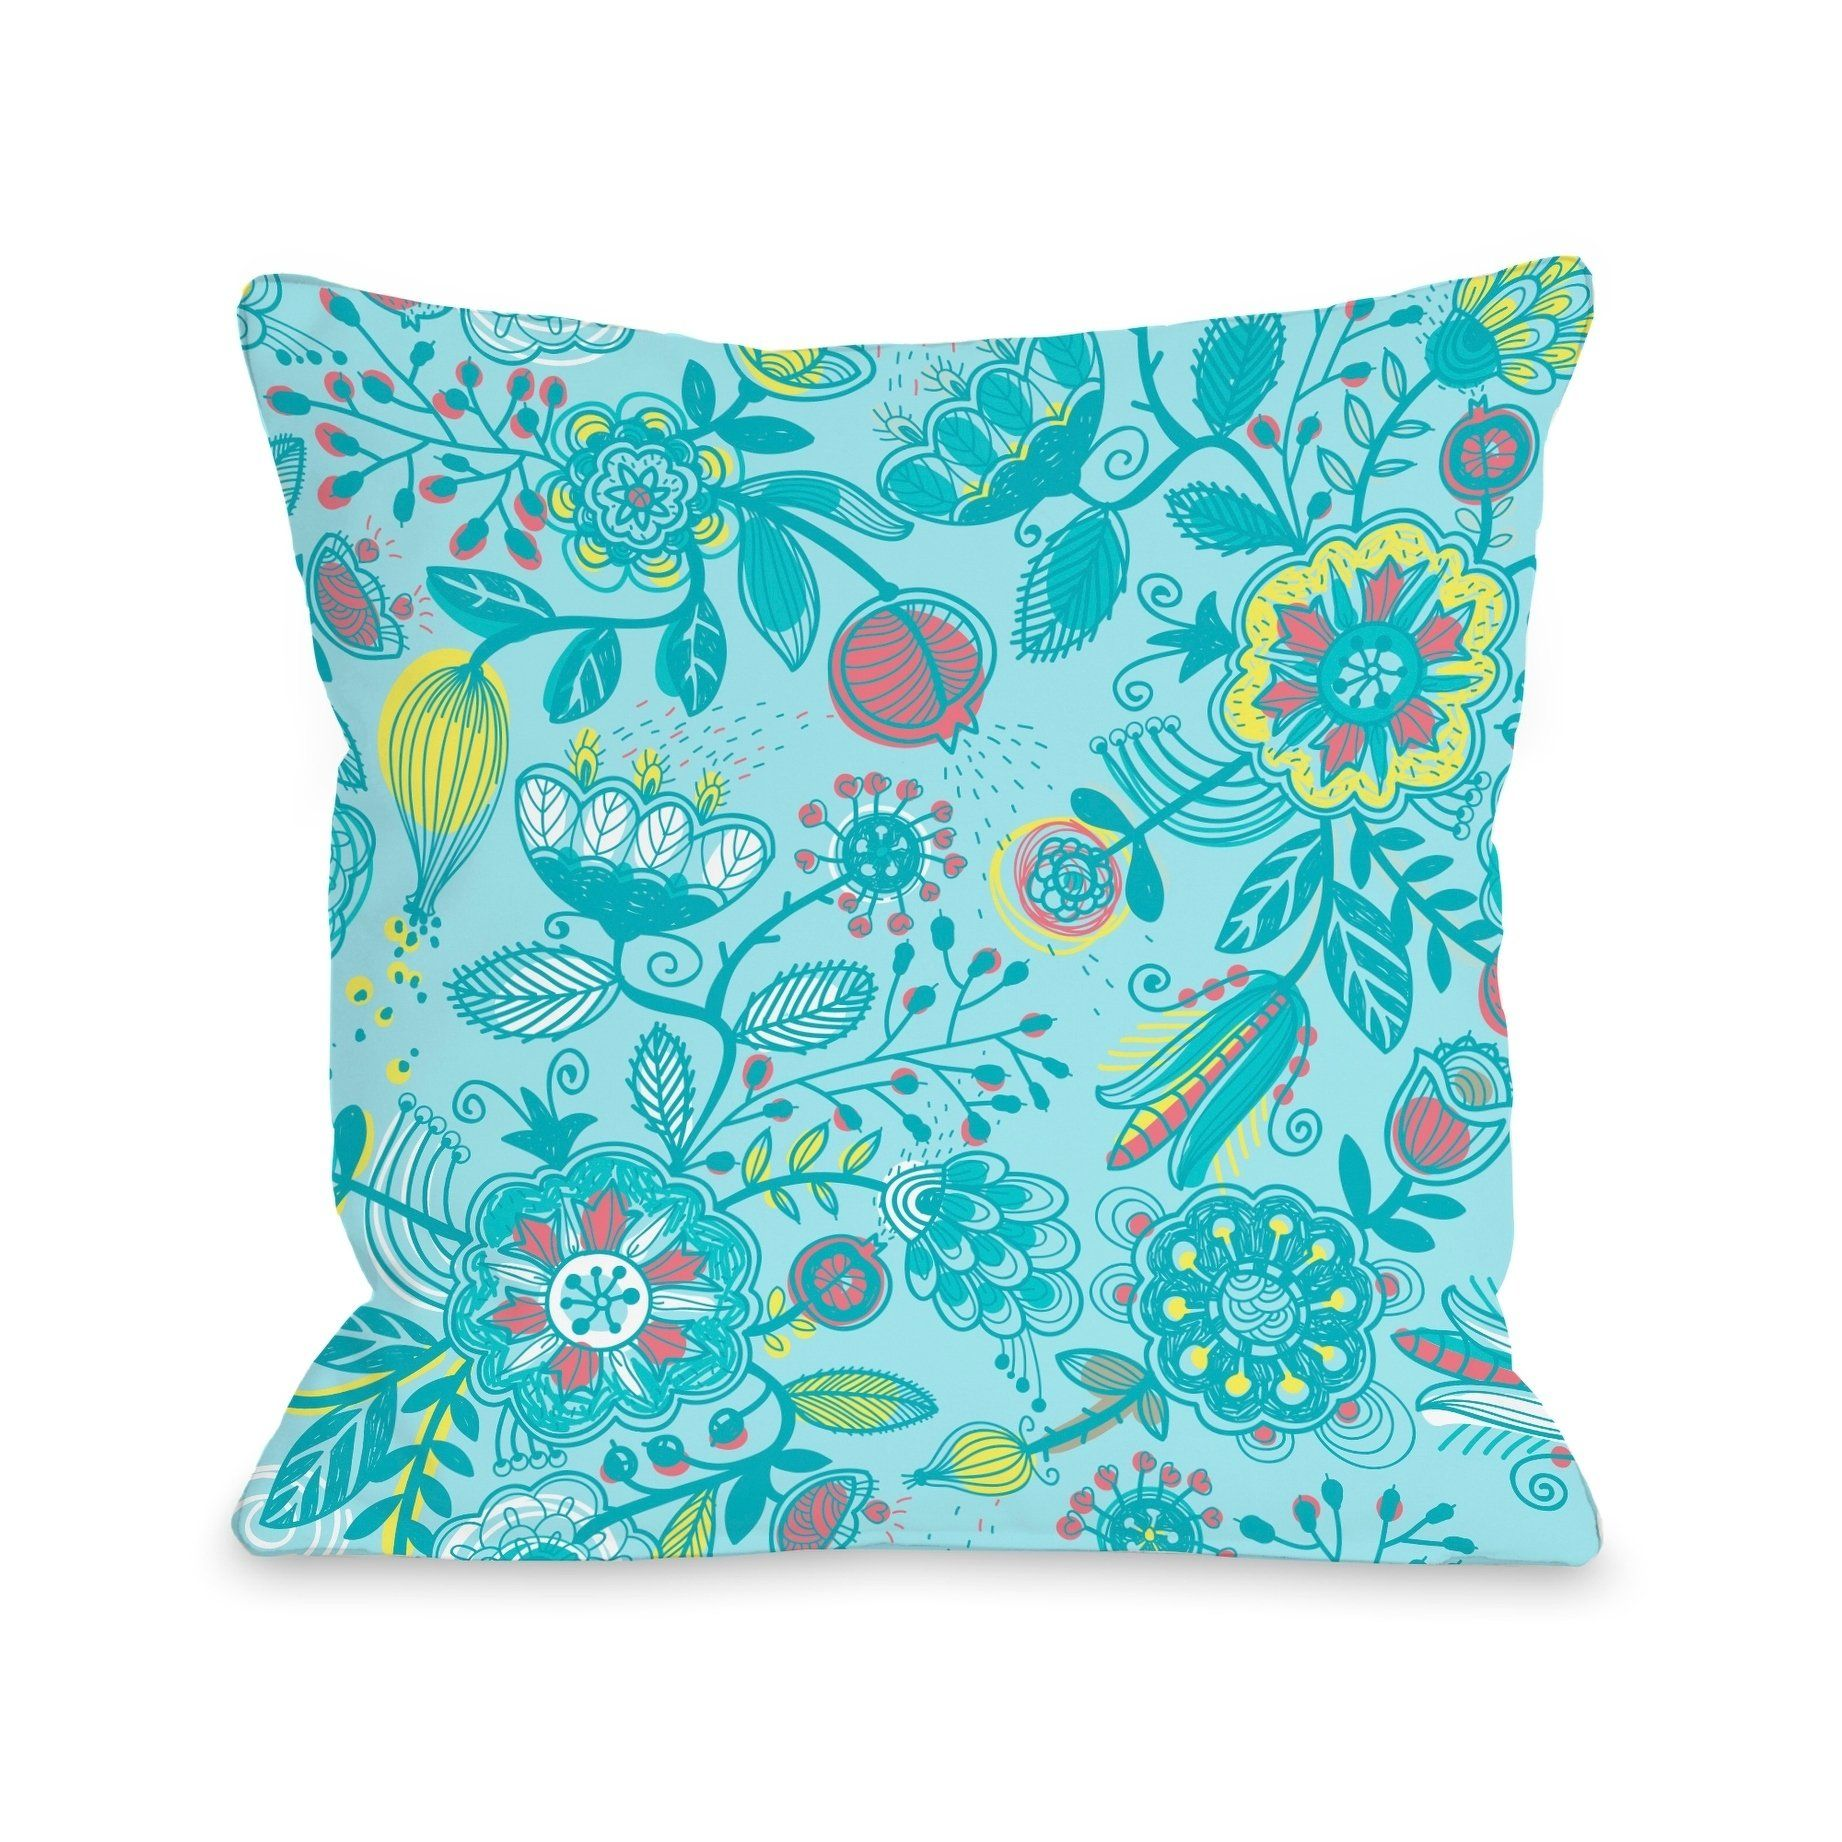 Quirky Florals - Blue Multi Pillow by OBC